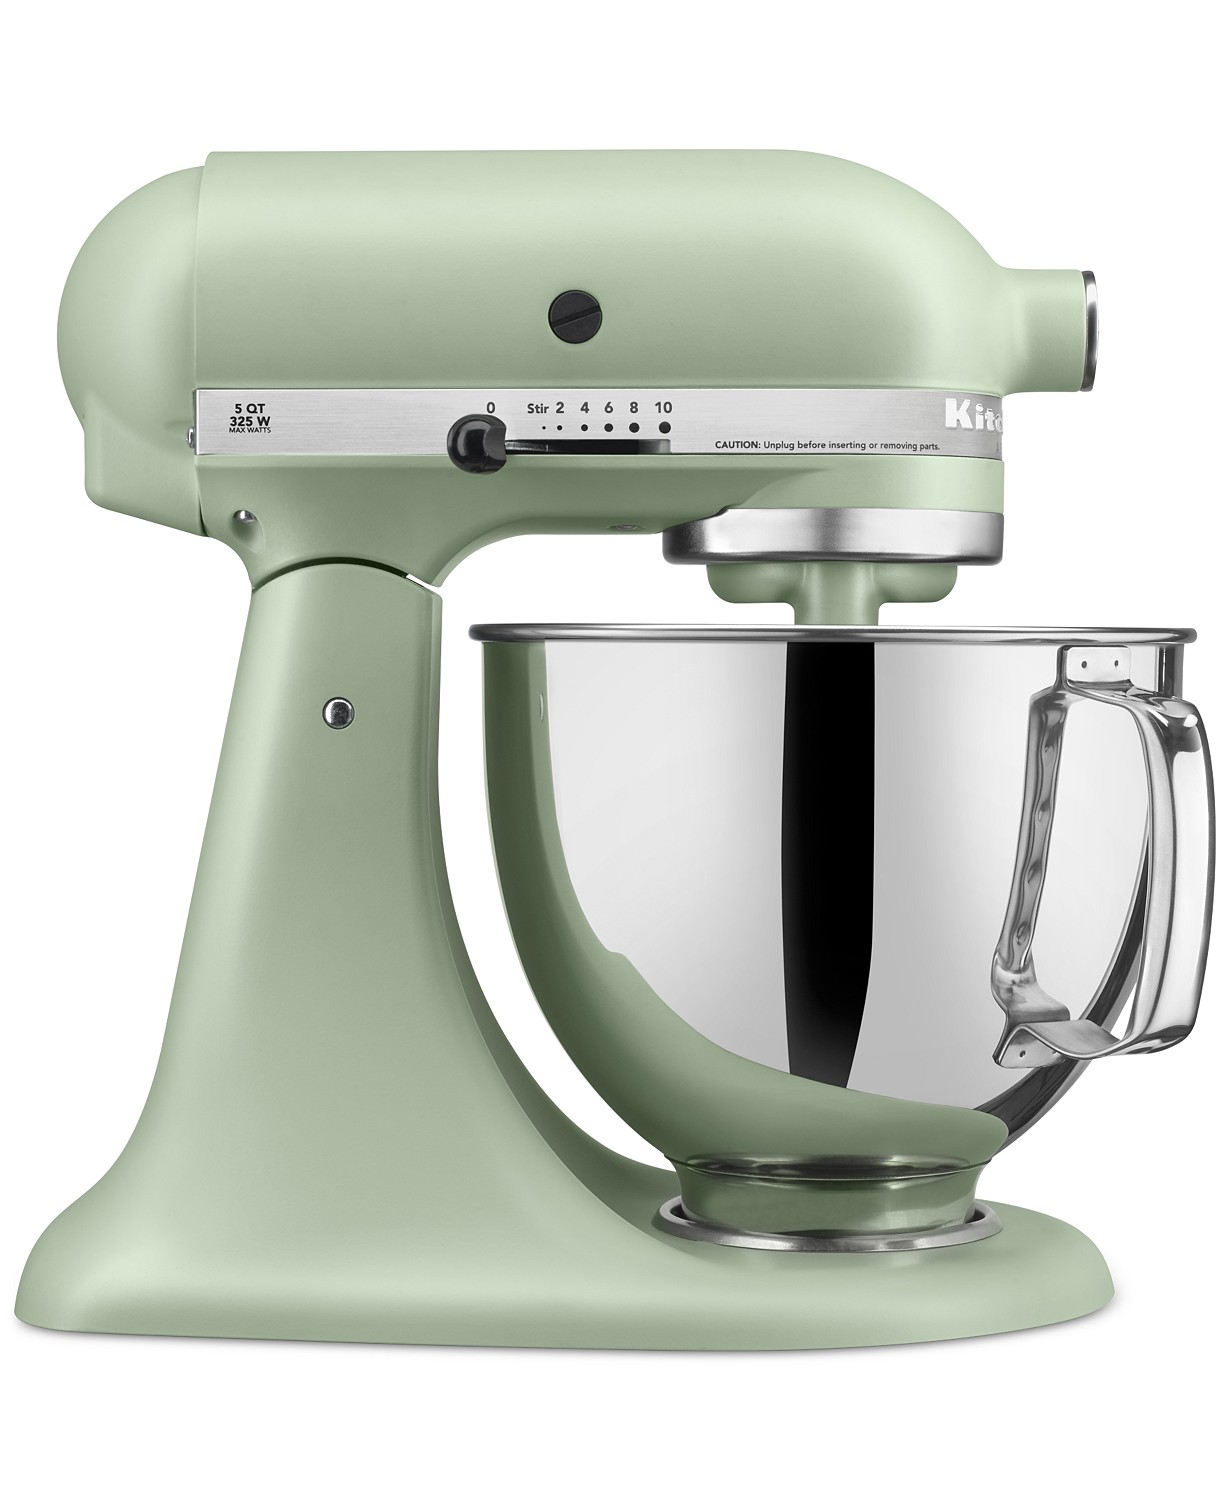 Matte Pistachio KitchenAid mixer Mother's Day gift idea.